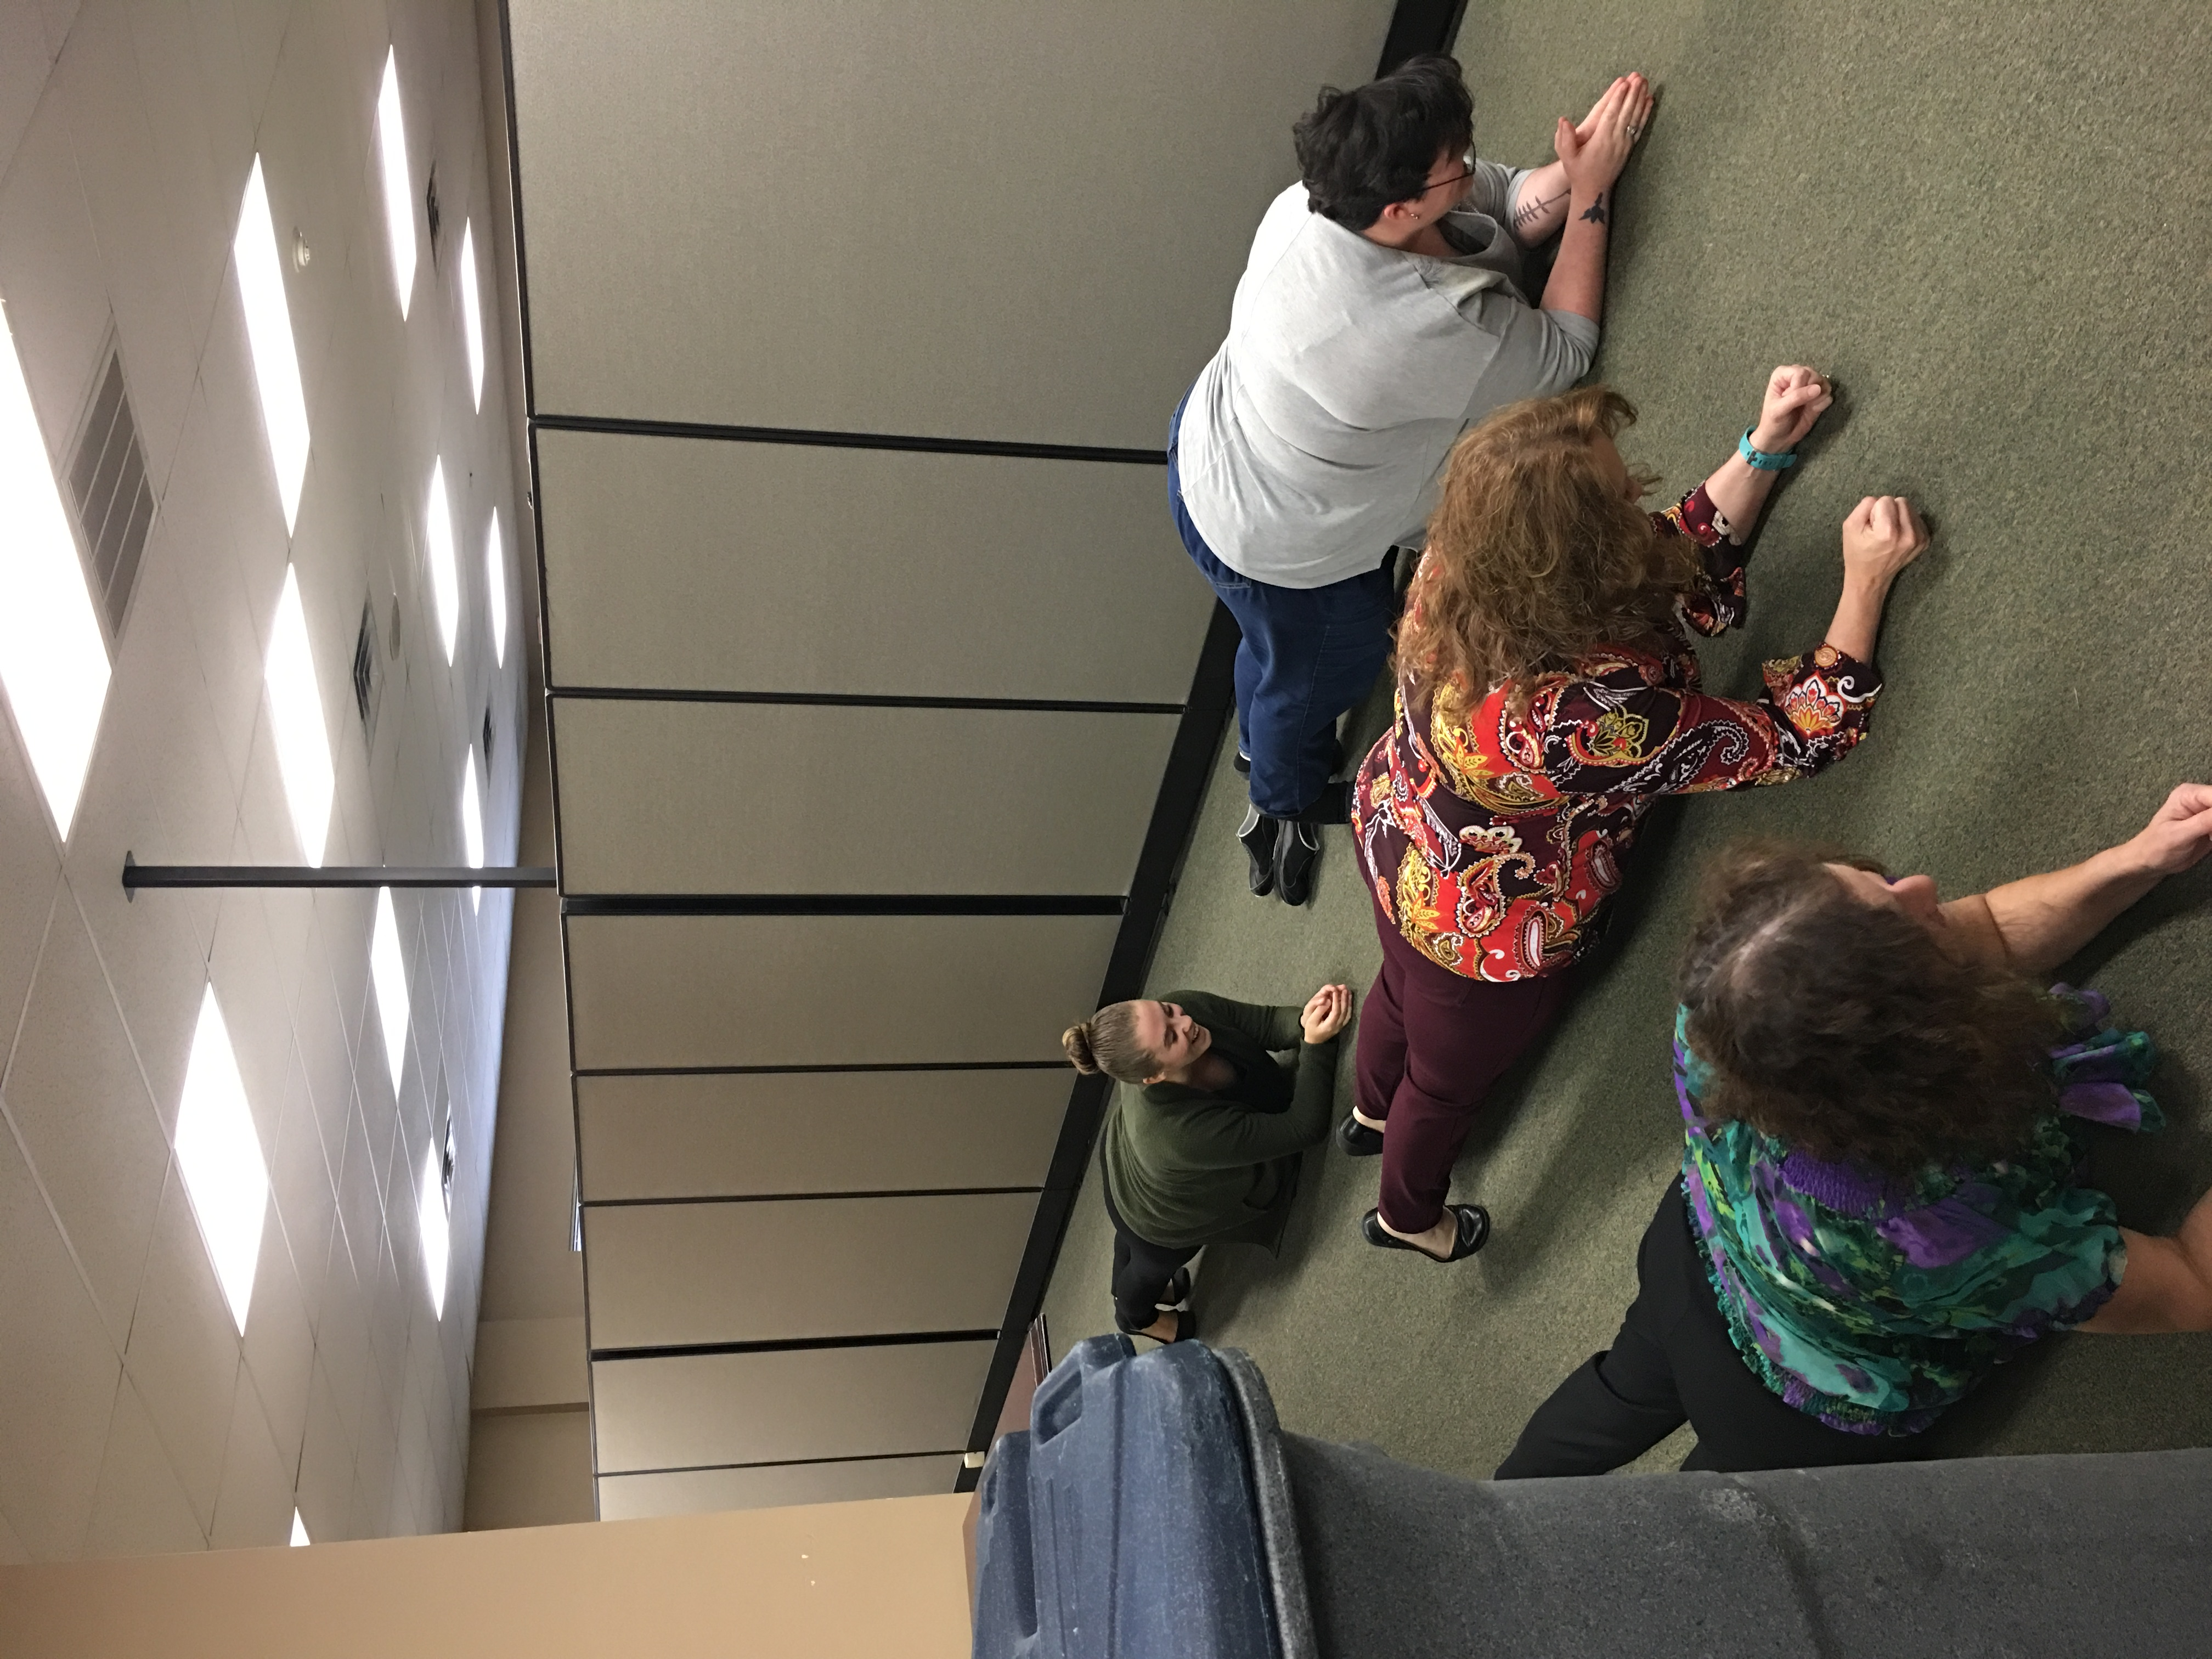 DHS' Wellness Council hosted a Planksgiving Challenge in November. Participants planked and gave thanks! They started out doing a 20-second plank. By the end of the month, they were up to 3-minute planks.